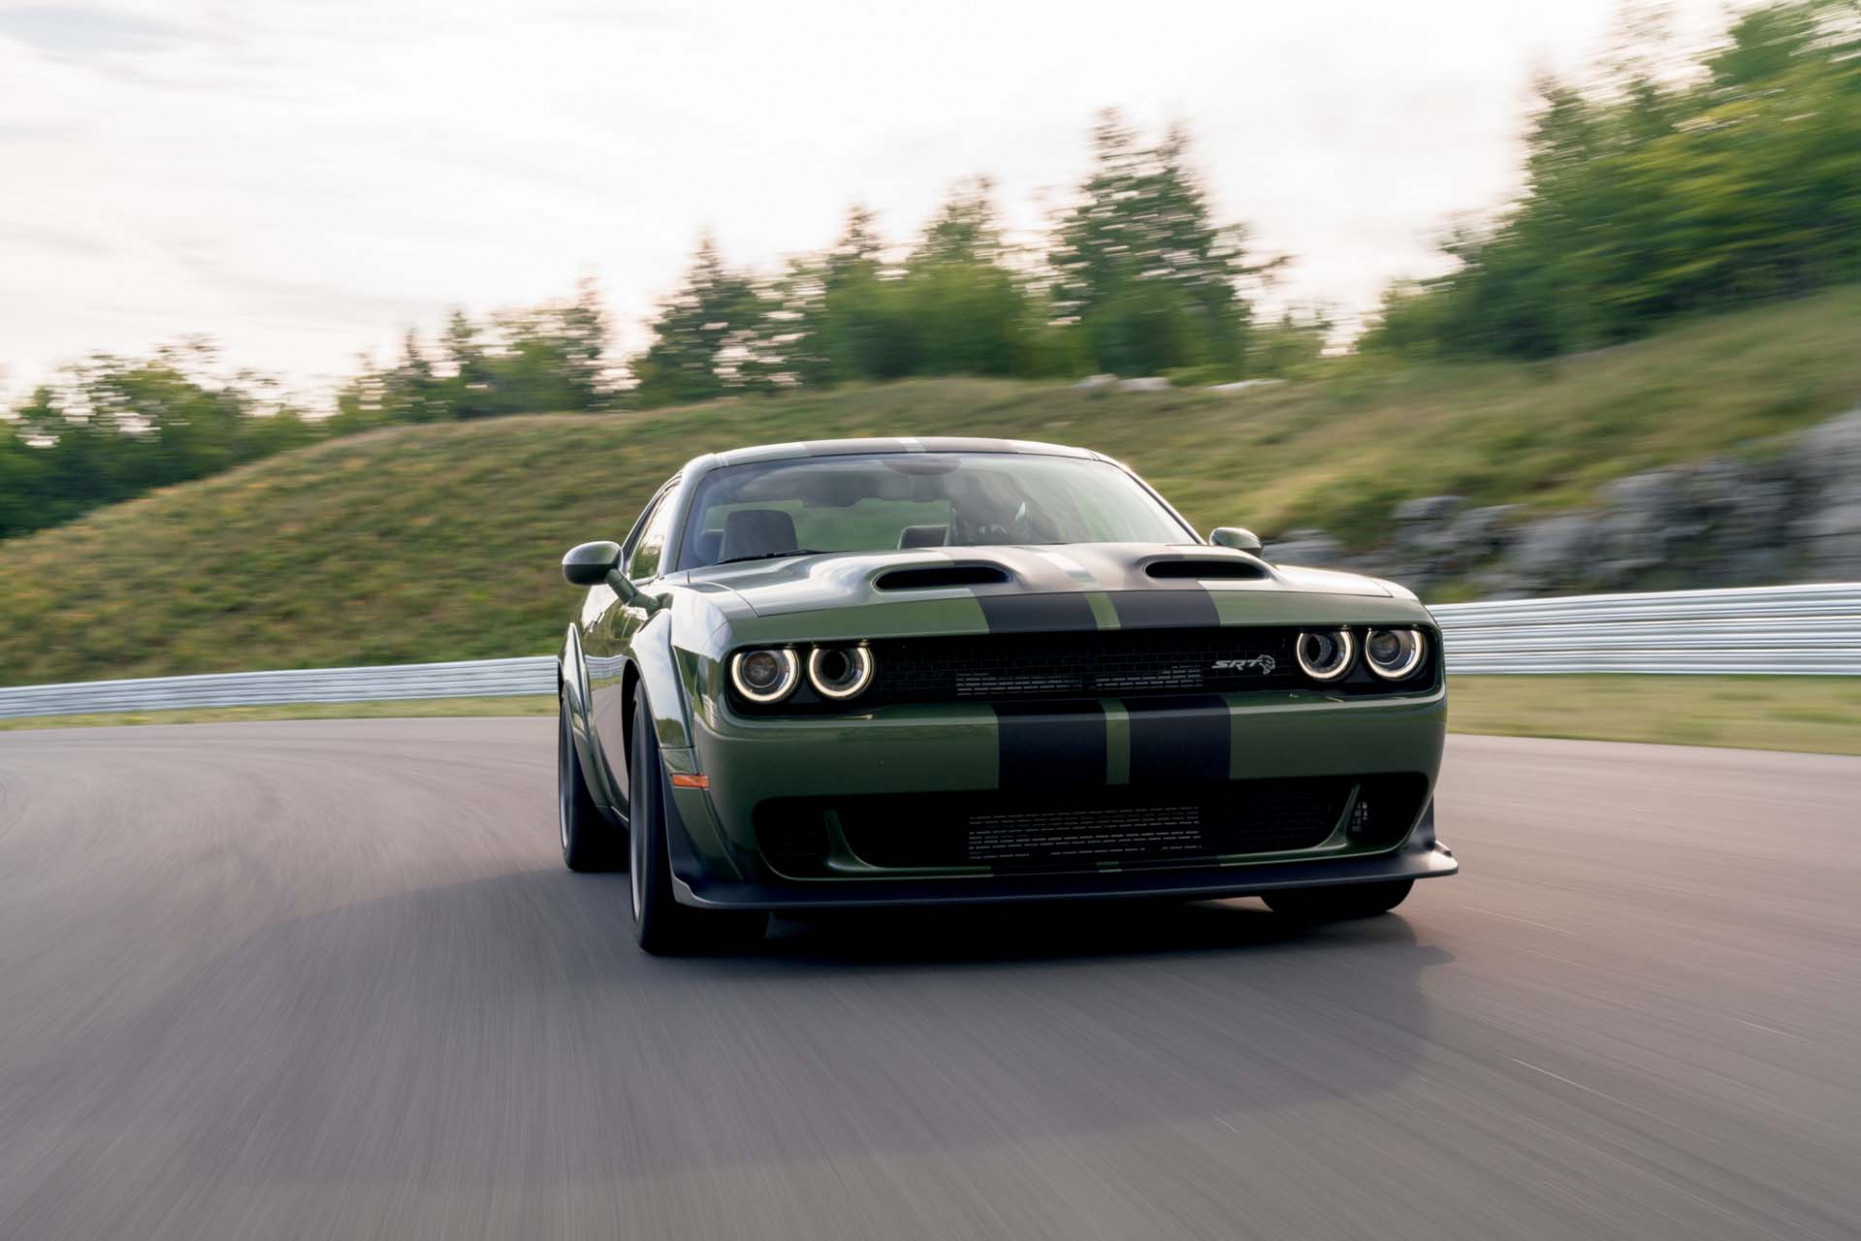 6 Dodge Challenger preview